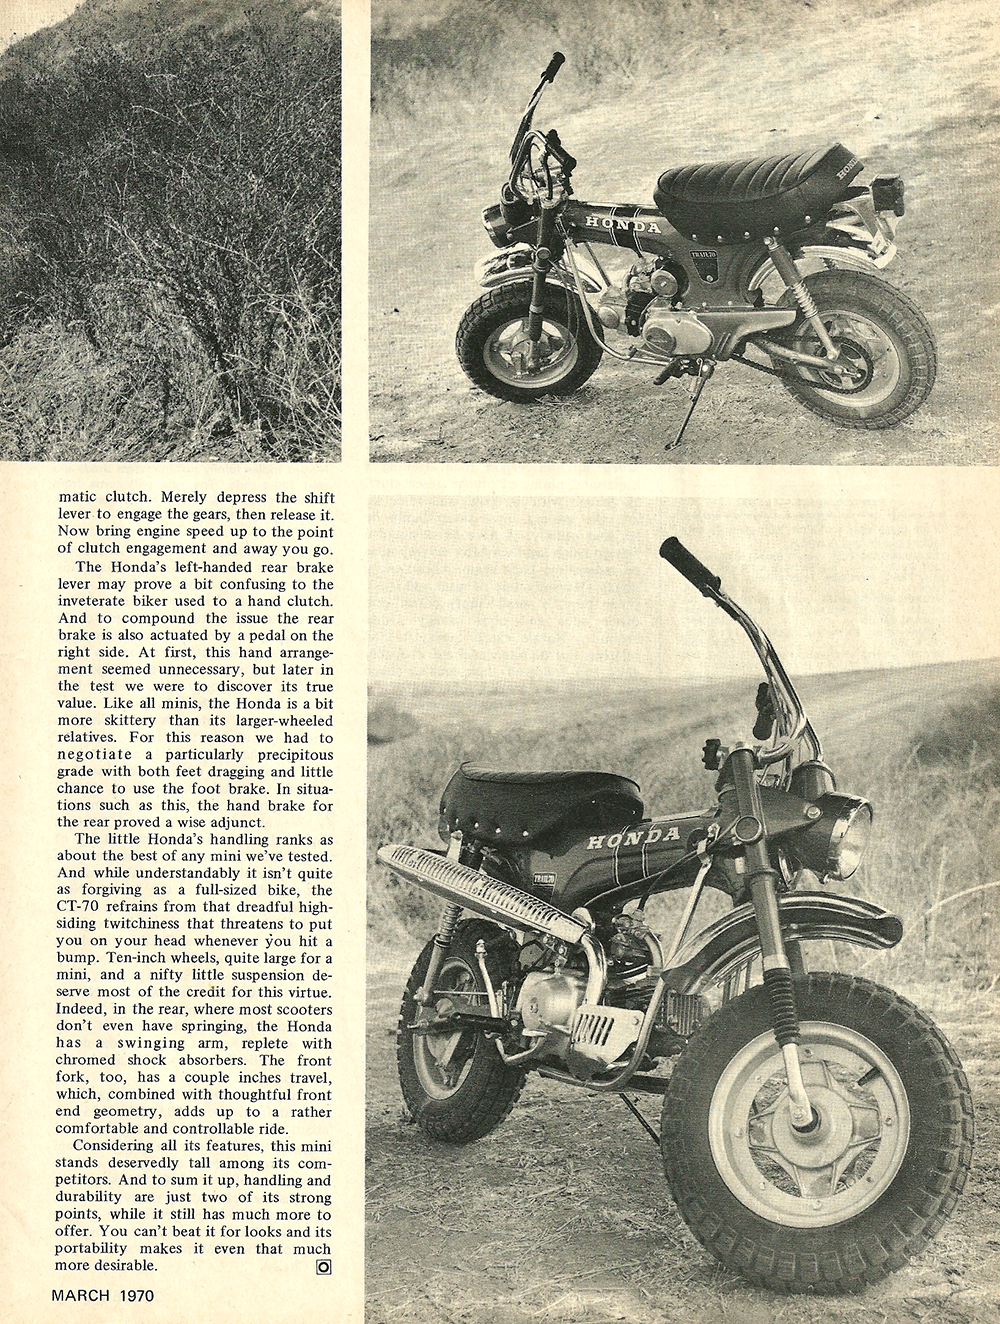 1970 Honda Ct70 Road Test Ye Olde Cycle Shoppe Trail 70 Mini Bike 2